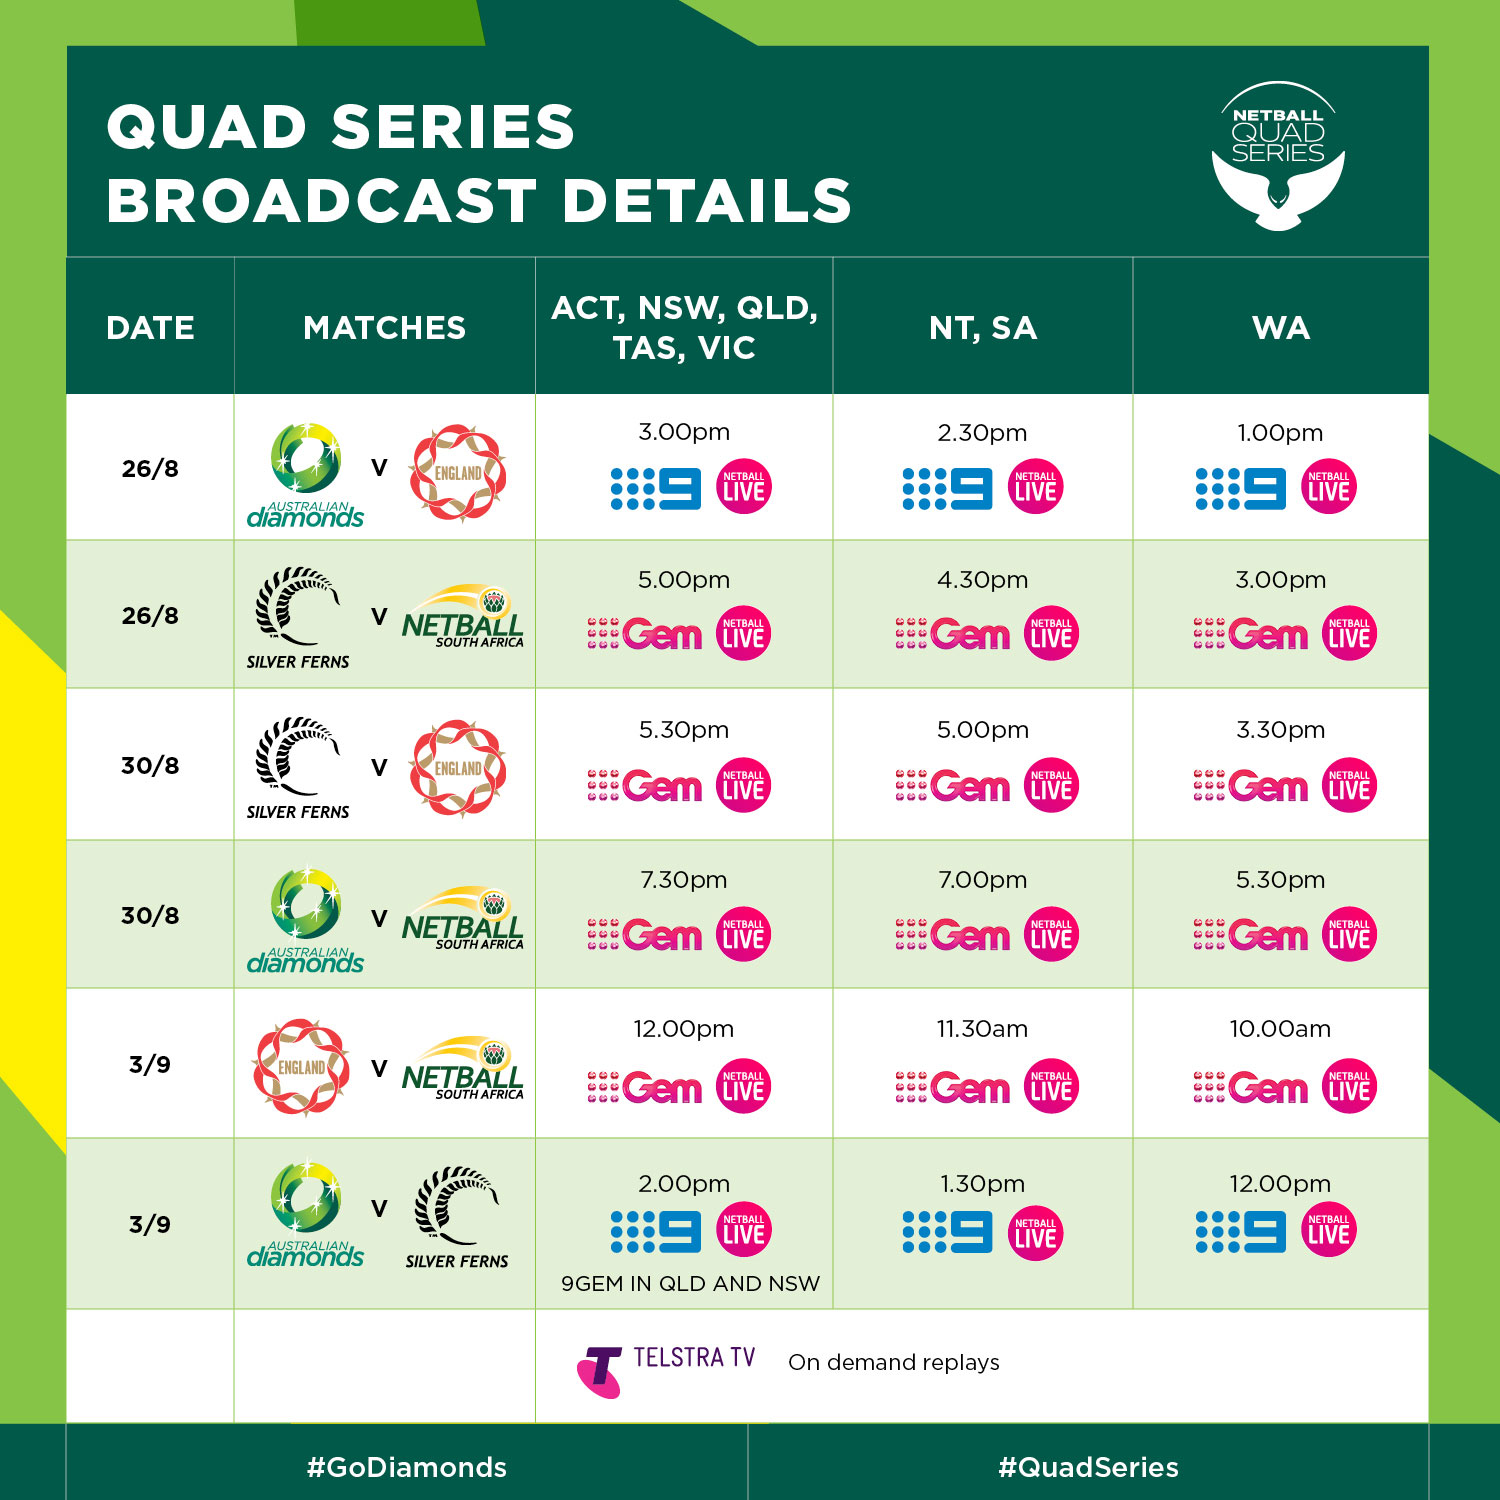 Timetable of match details for 2017 Quad Series